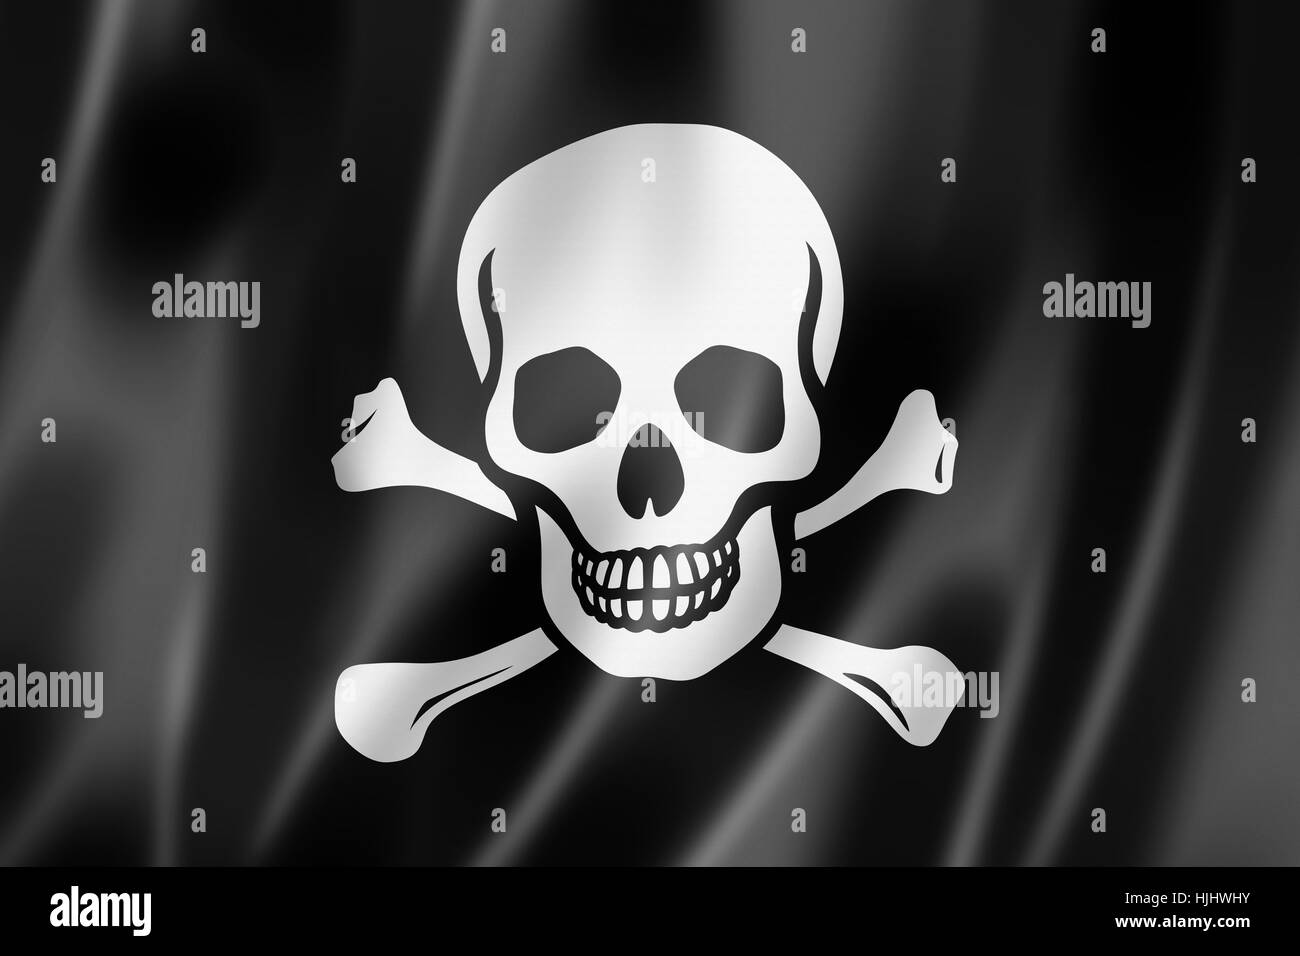 Skull flag pirate pictogram symbol pictograph trade symbol skull flag pirate pictogram symbol pictograph trade symbol danger buycottarizona Images